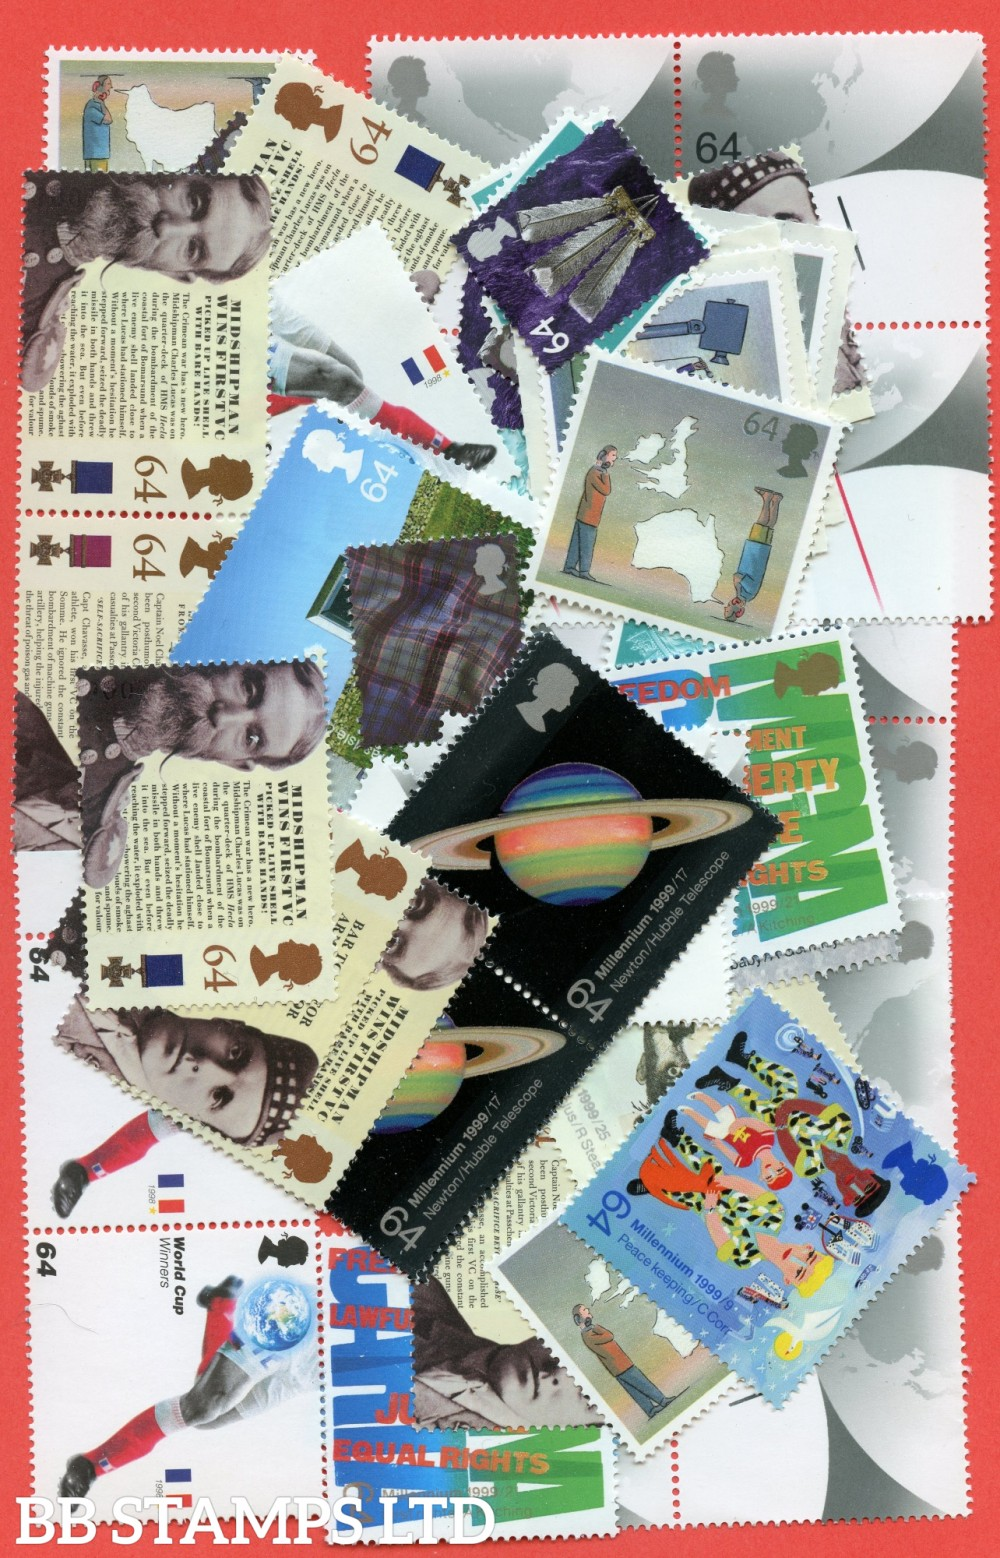 100 x 64p stamps. All of our postage lots are genuine mint stamps with gum and have never been used as postage.